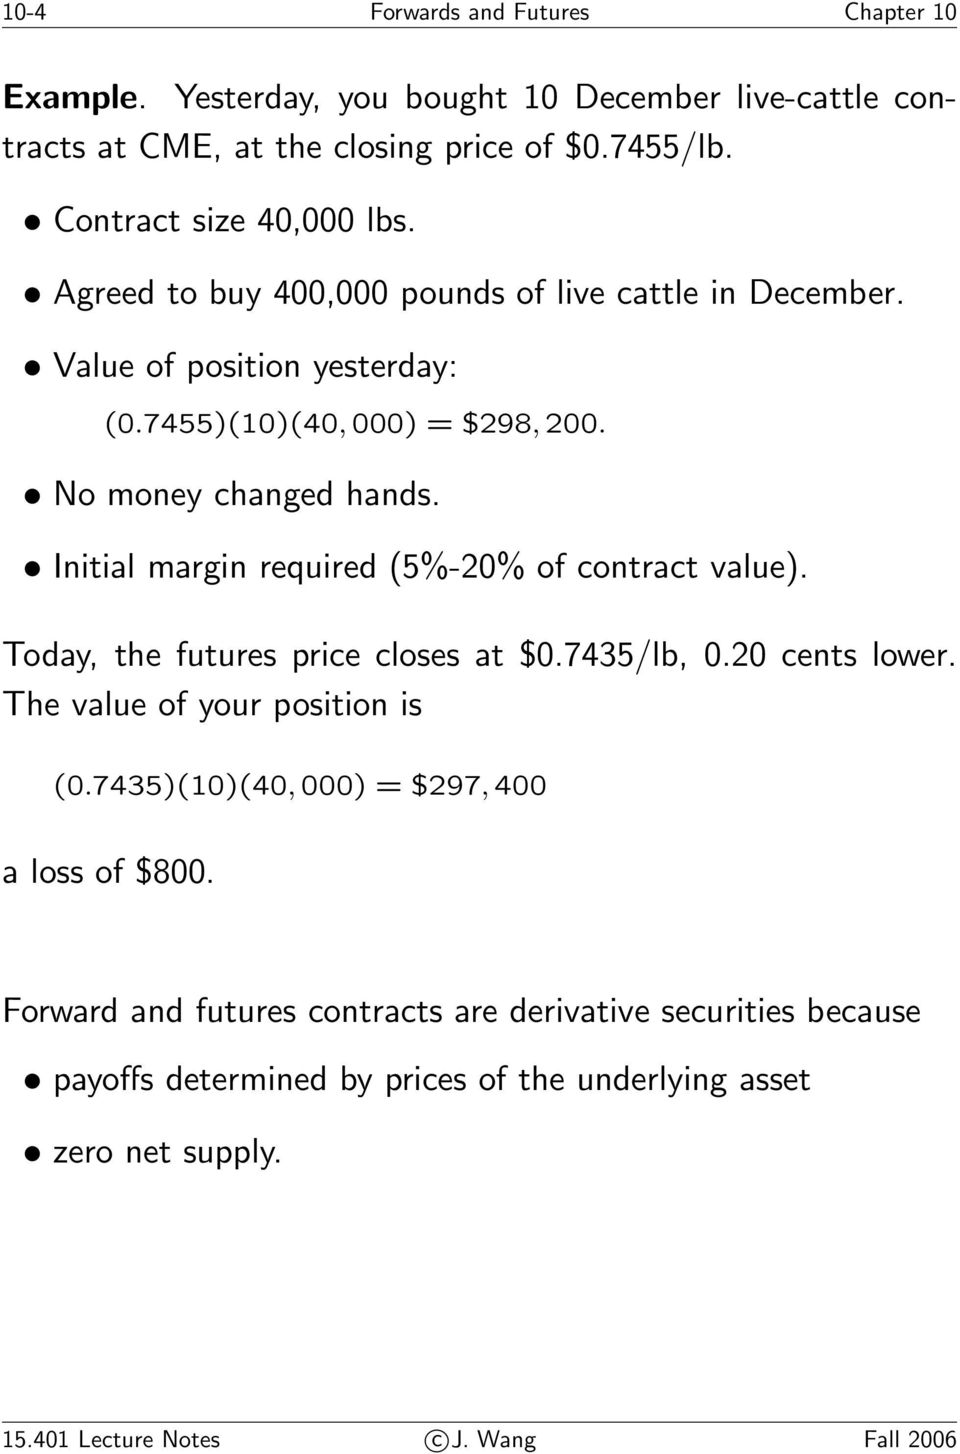 Initial margin required (5%-20% of contract value). Today, the futures price closes at $0.7435/lb, 0.20 cents lower. The value of your position is (0.